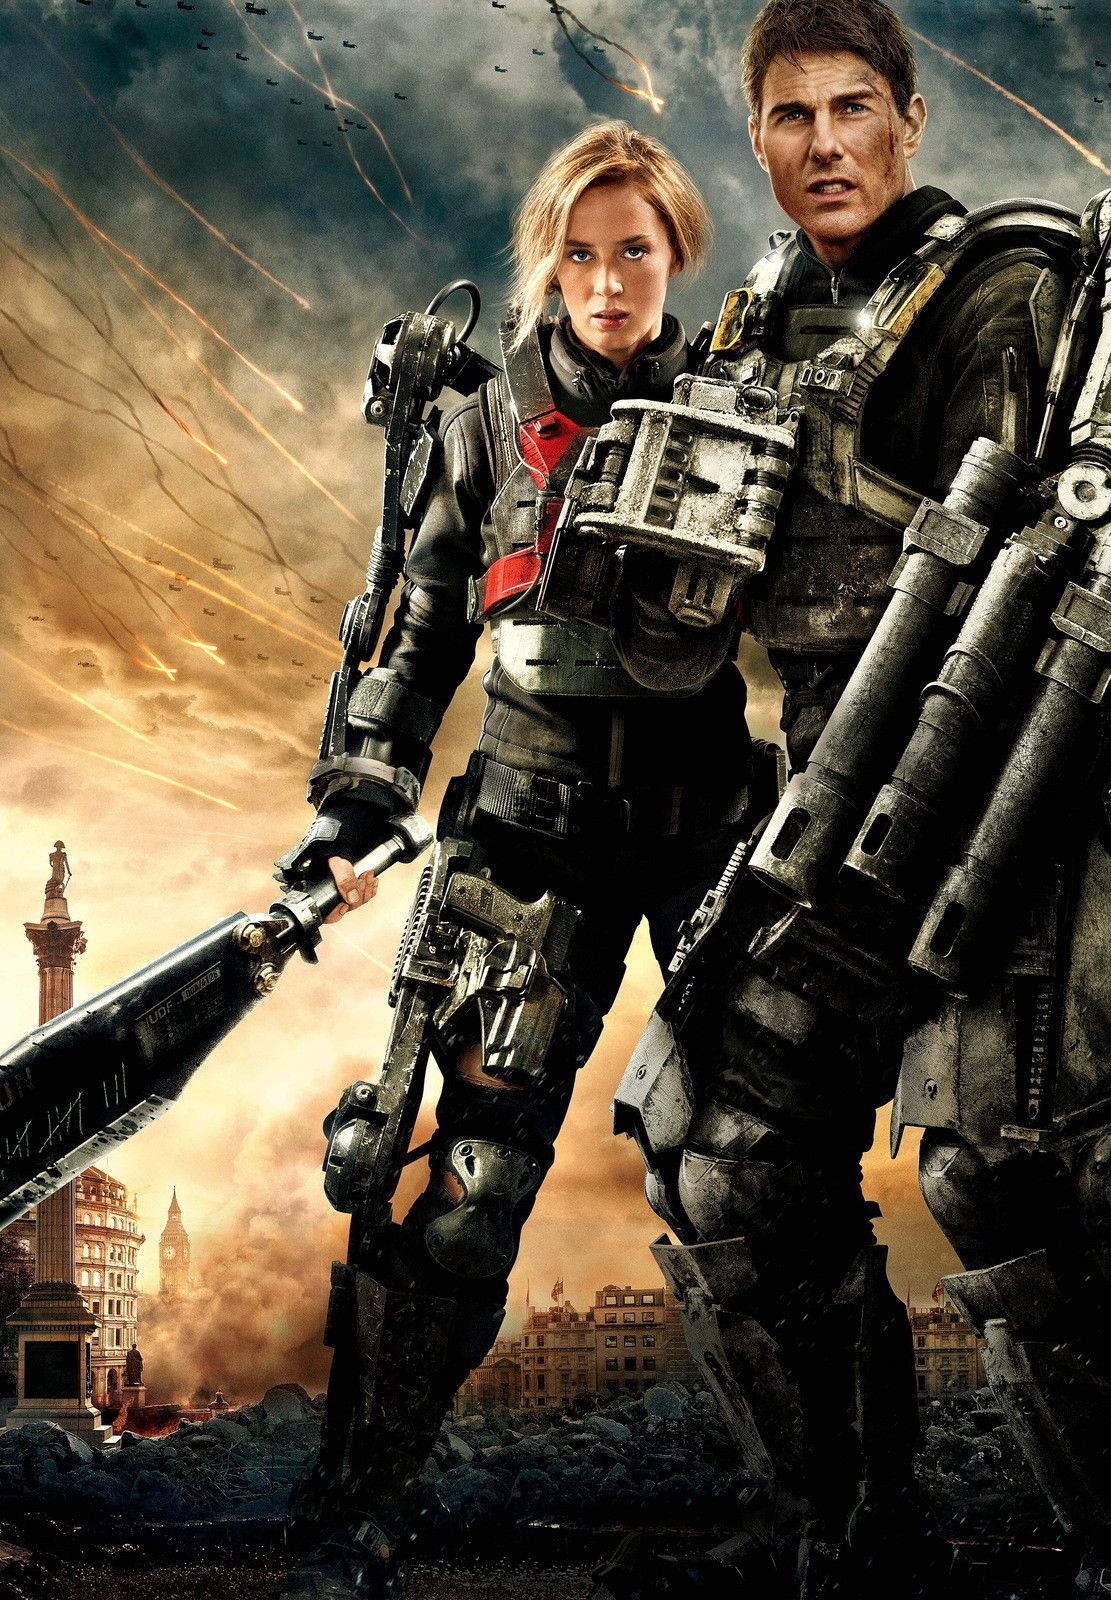 Edge Of Tomorrow Poster V16 Tom Cruise Emily Blunt 24 X 36